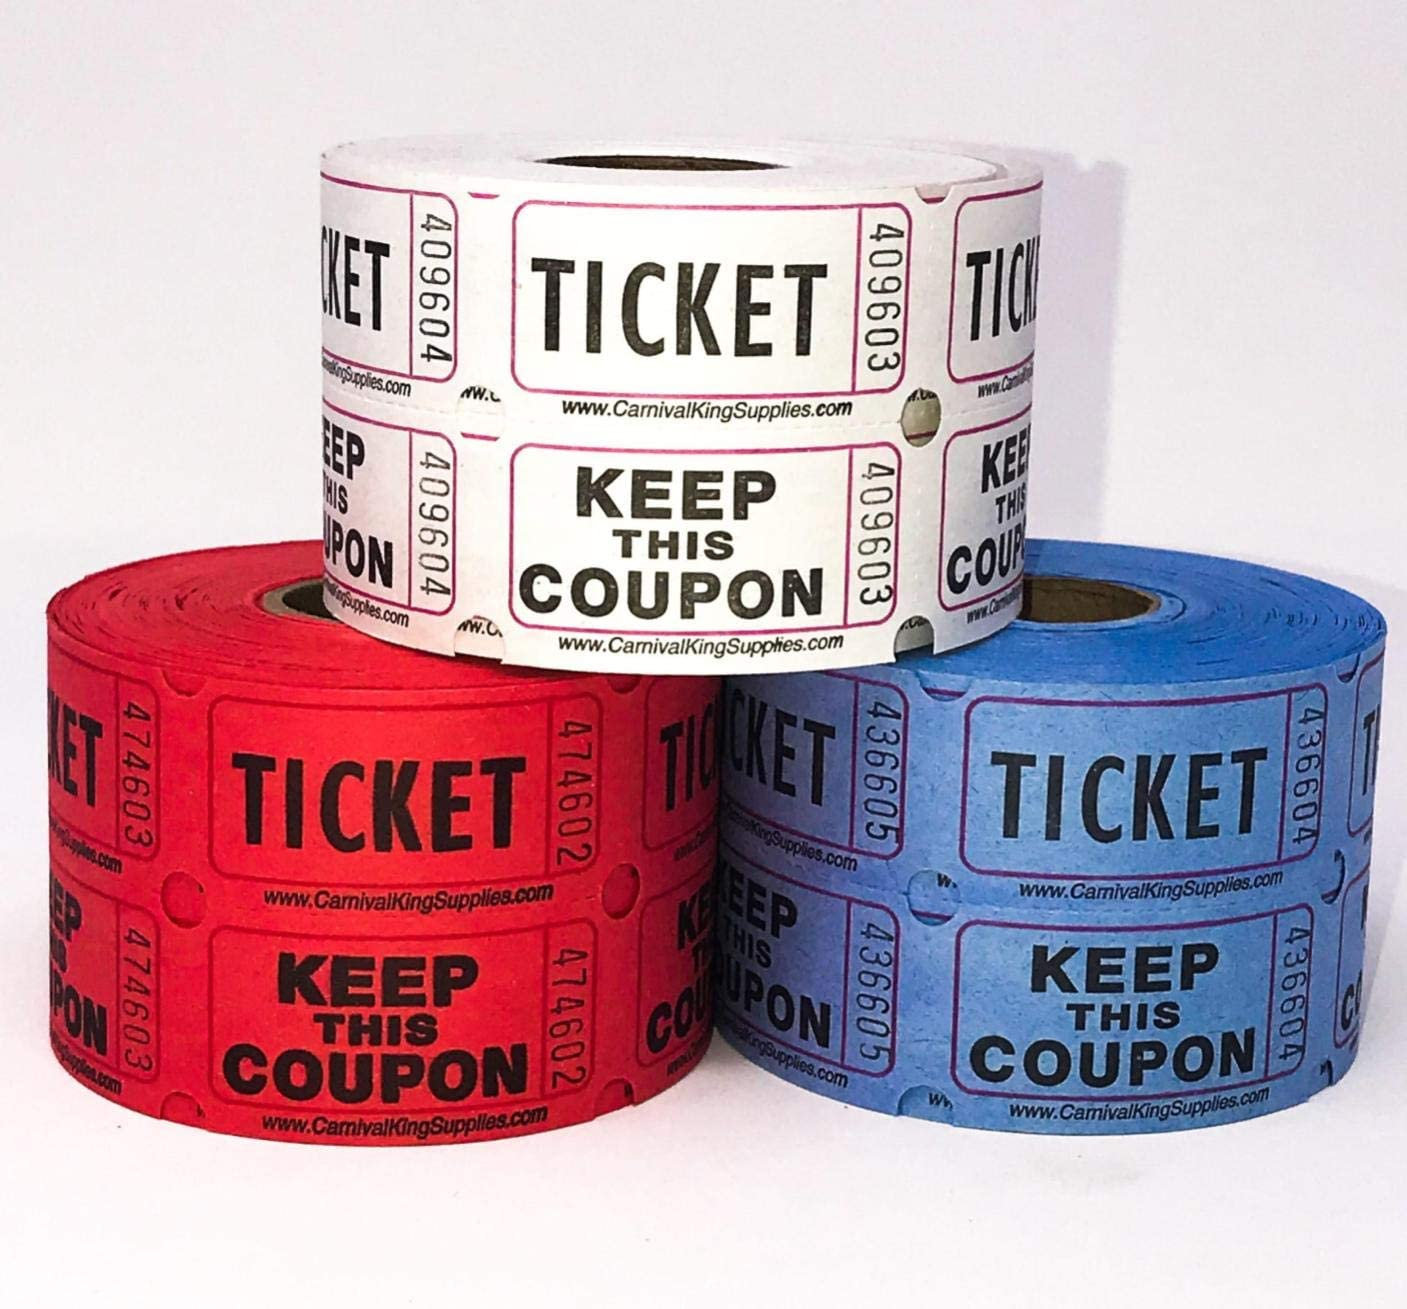 1200 Raffle Tickets 4th of July Party Double Roll 50 50 Style Red White Blue Assorted Colors Prize Tickets